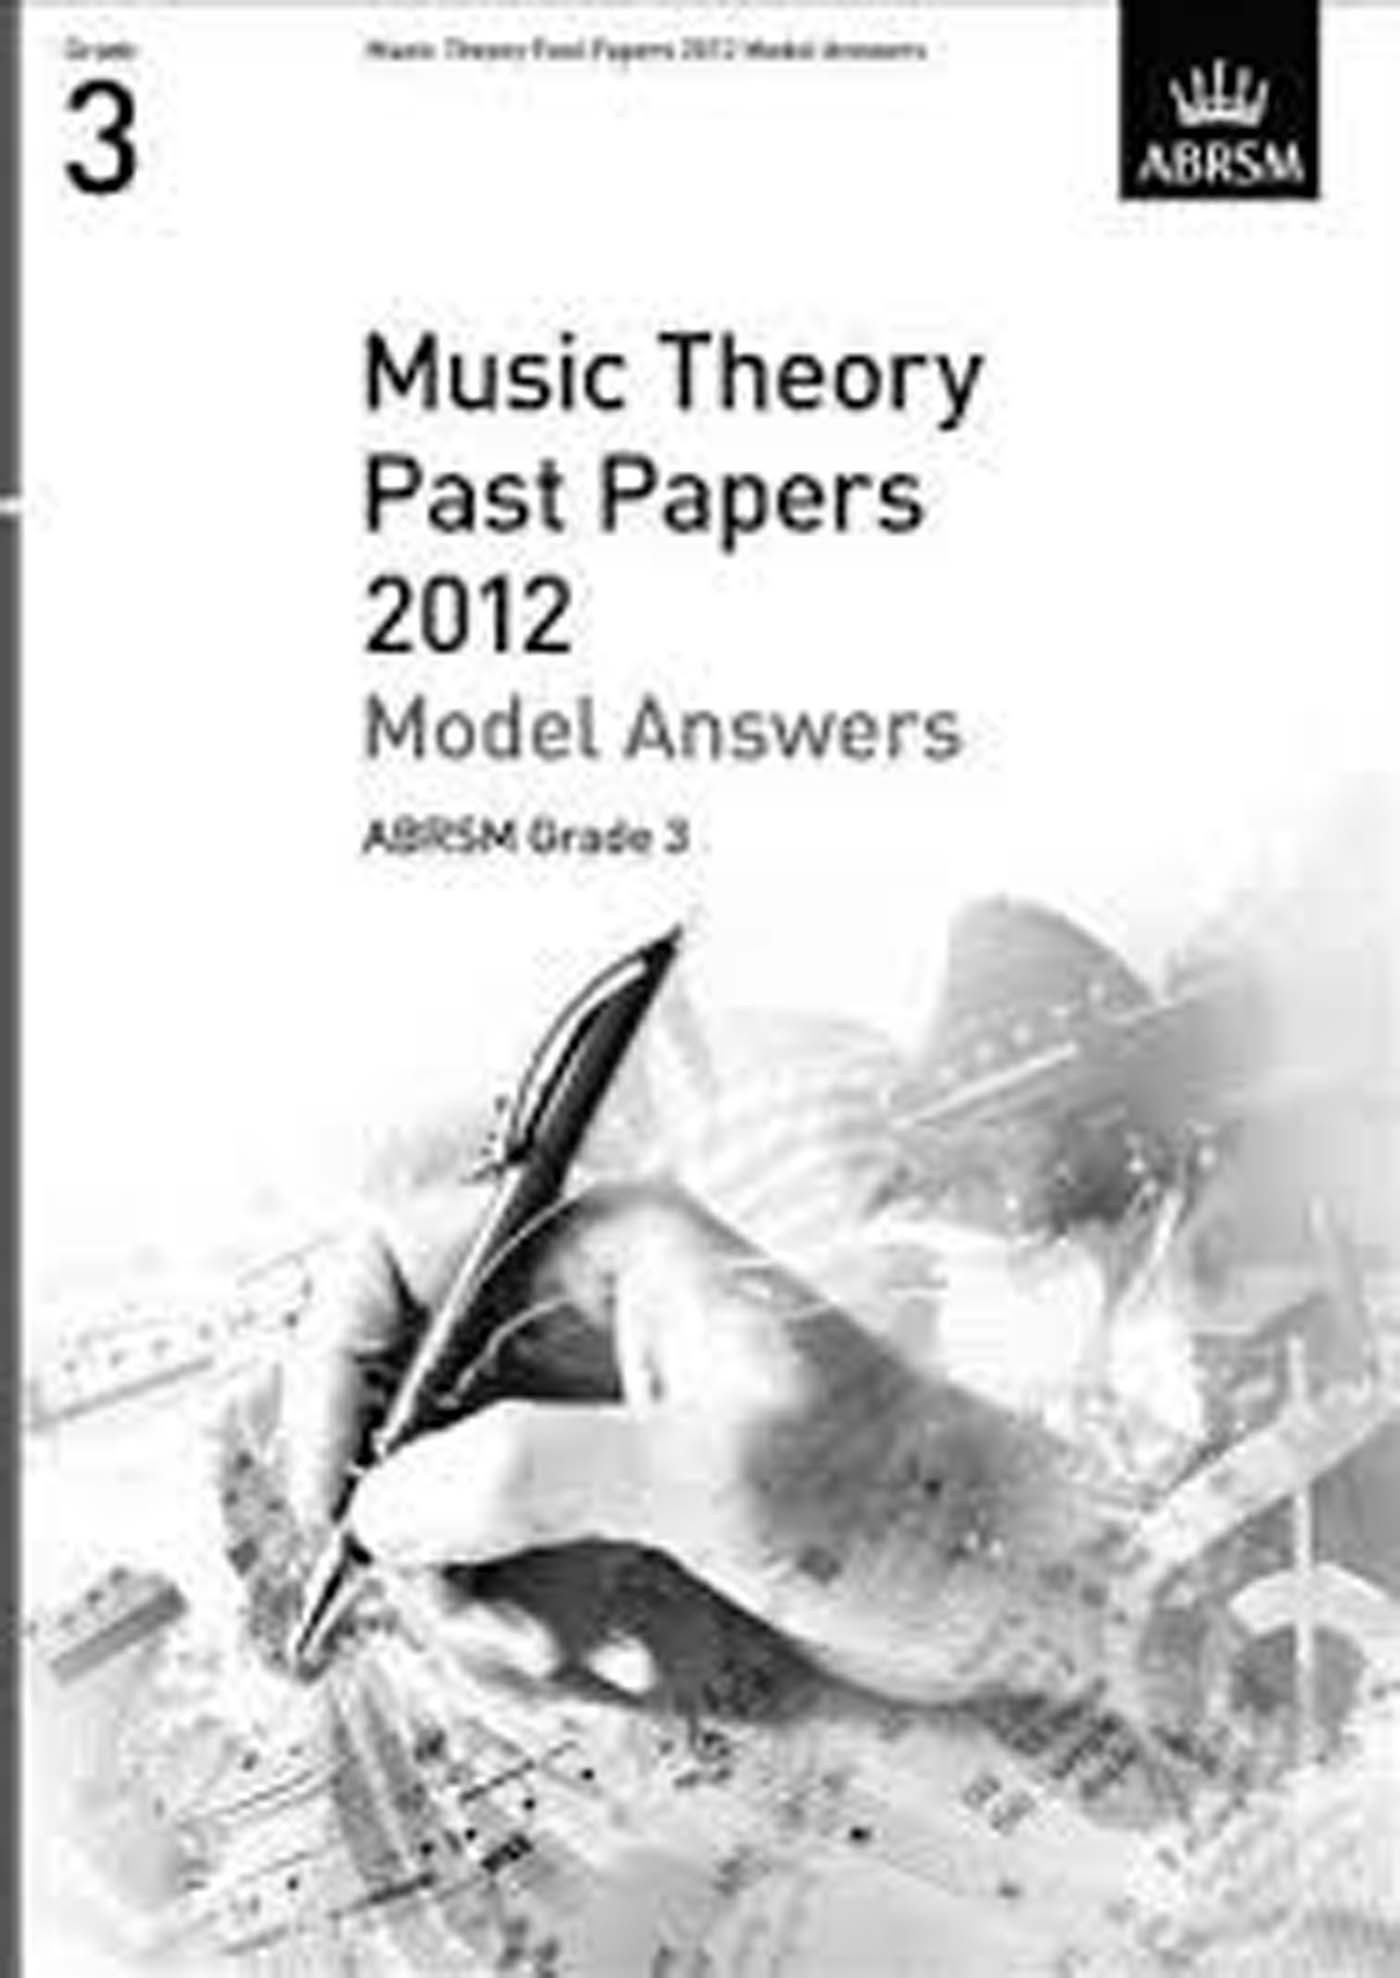 ABRSM Music Theory Past Paper 2012 Model Answers Grade 3 Book S124